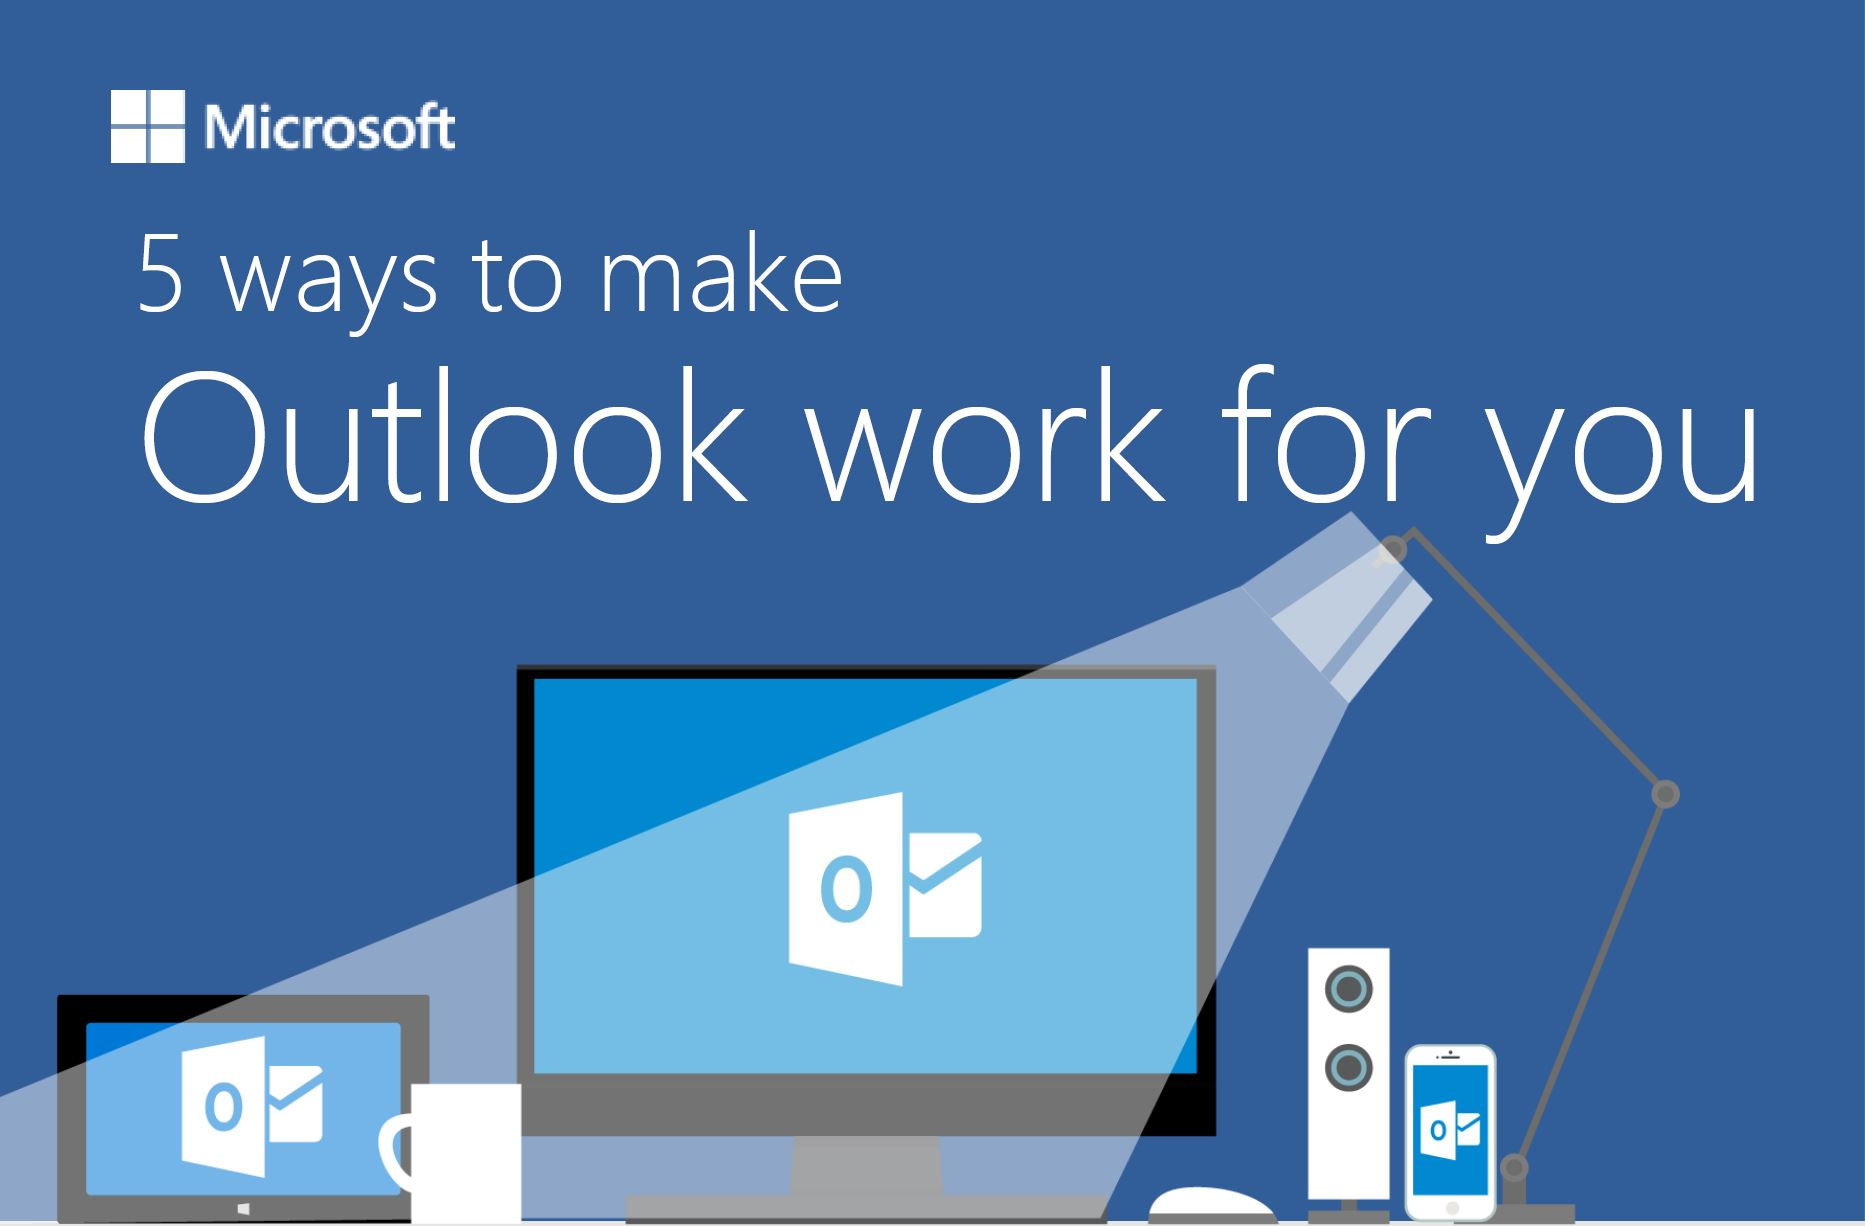 Microsoft-Outlook-Infographic